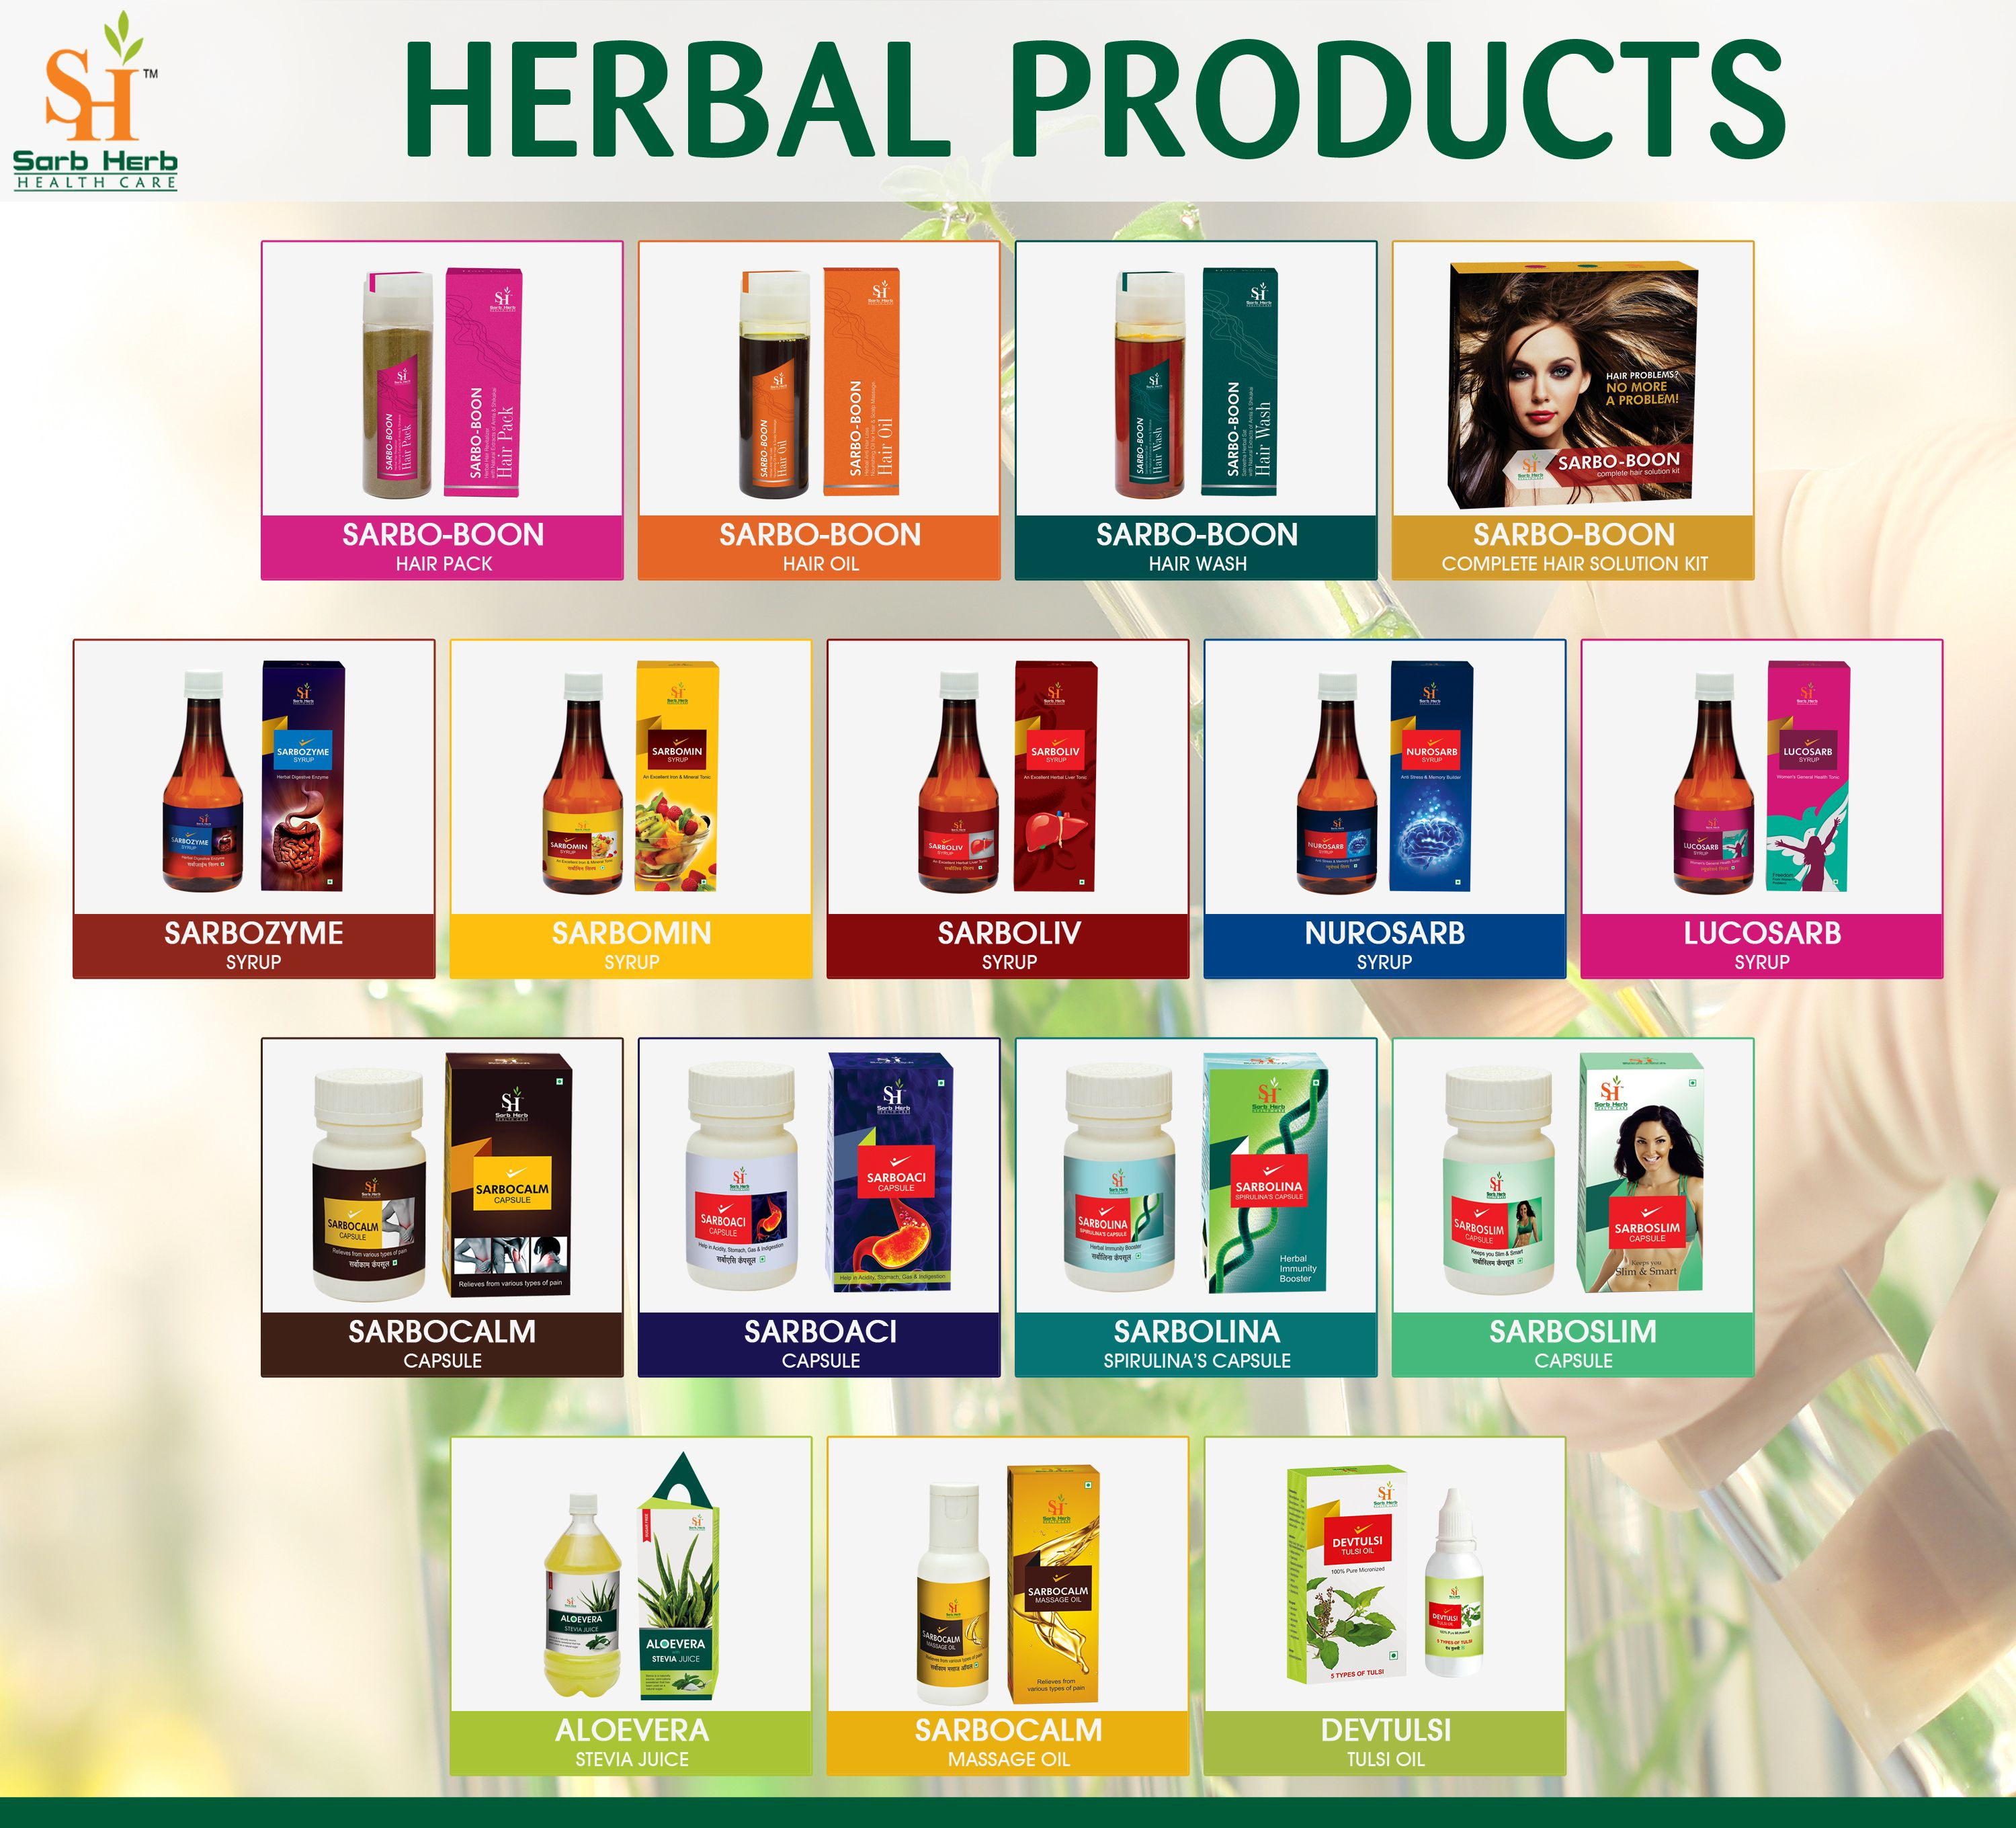 Care health herbal manufacturer product - Natural Herbal Remedies Ayurvedic Herbal Products And Medicine Sarb Herb Healthcare Is A Herbal Health Care Products Company Deals In All Kinds Of Herbal